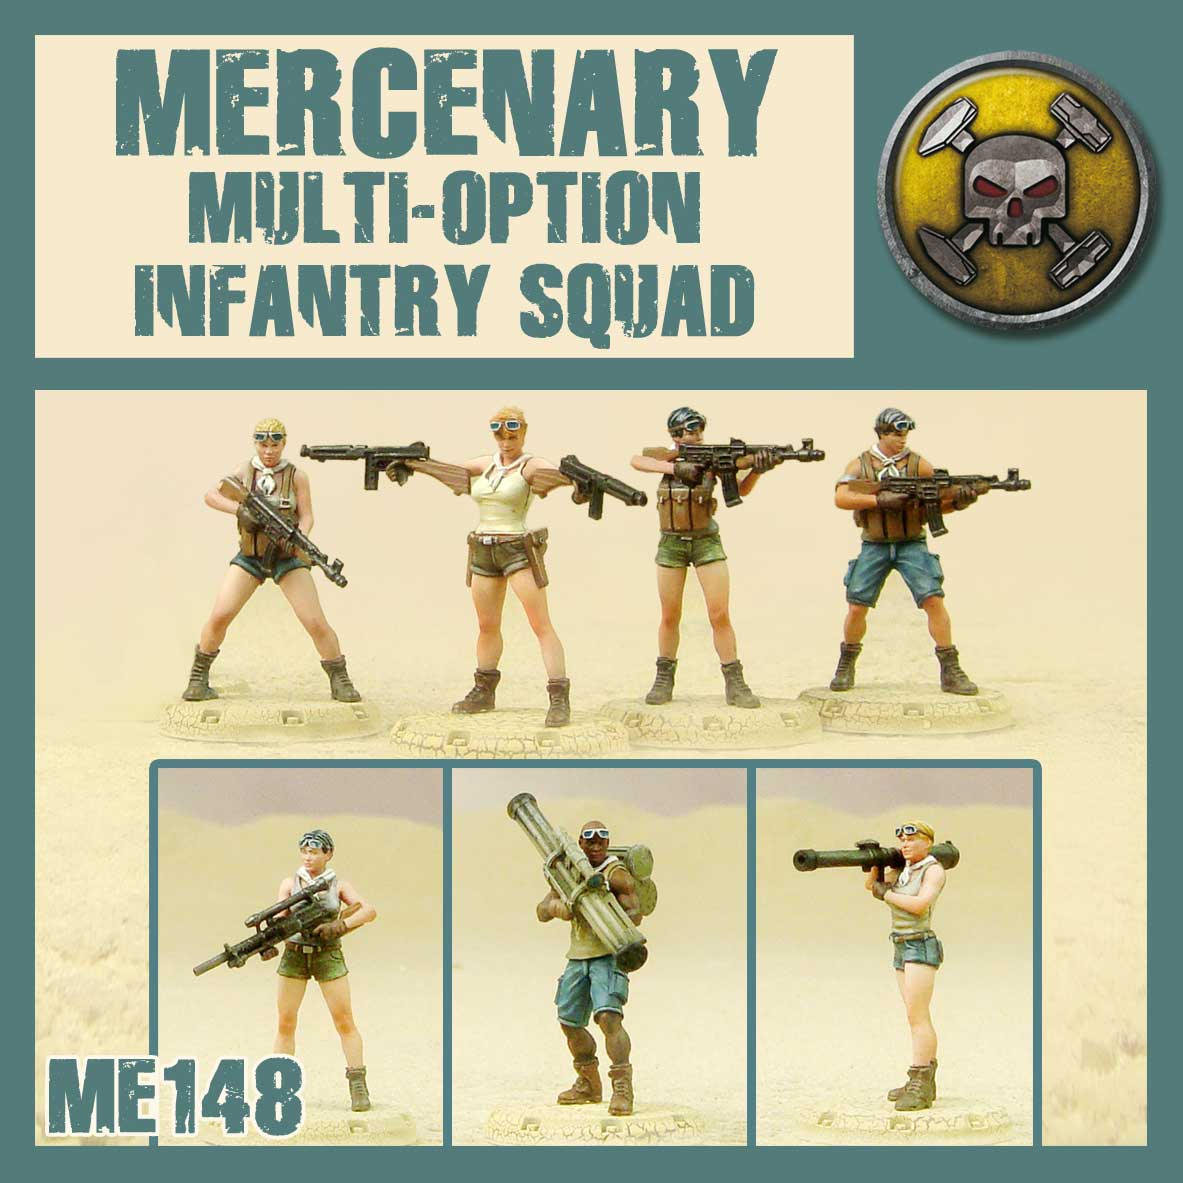 Mercenary Multi-Option Infantry Squad